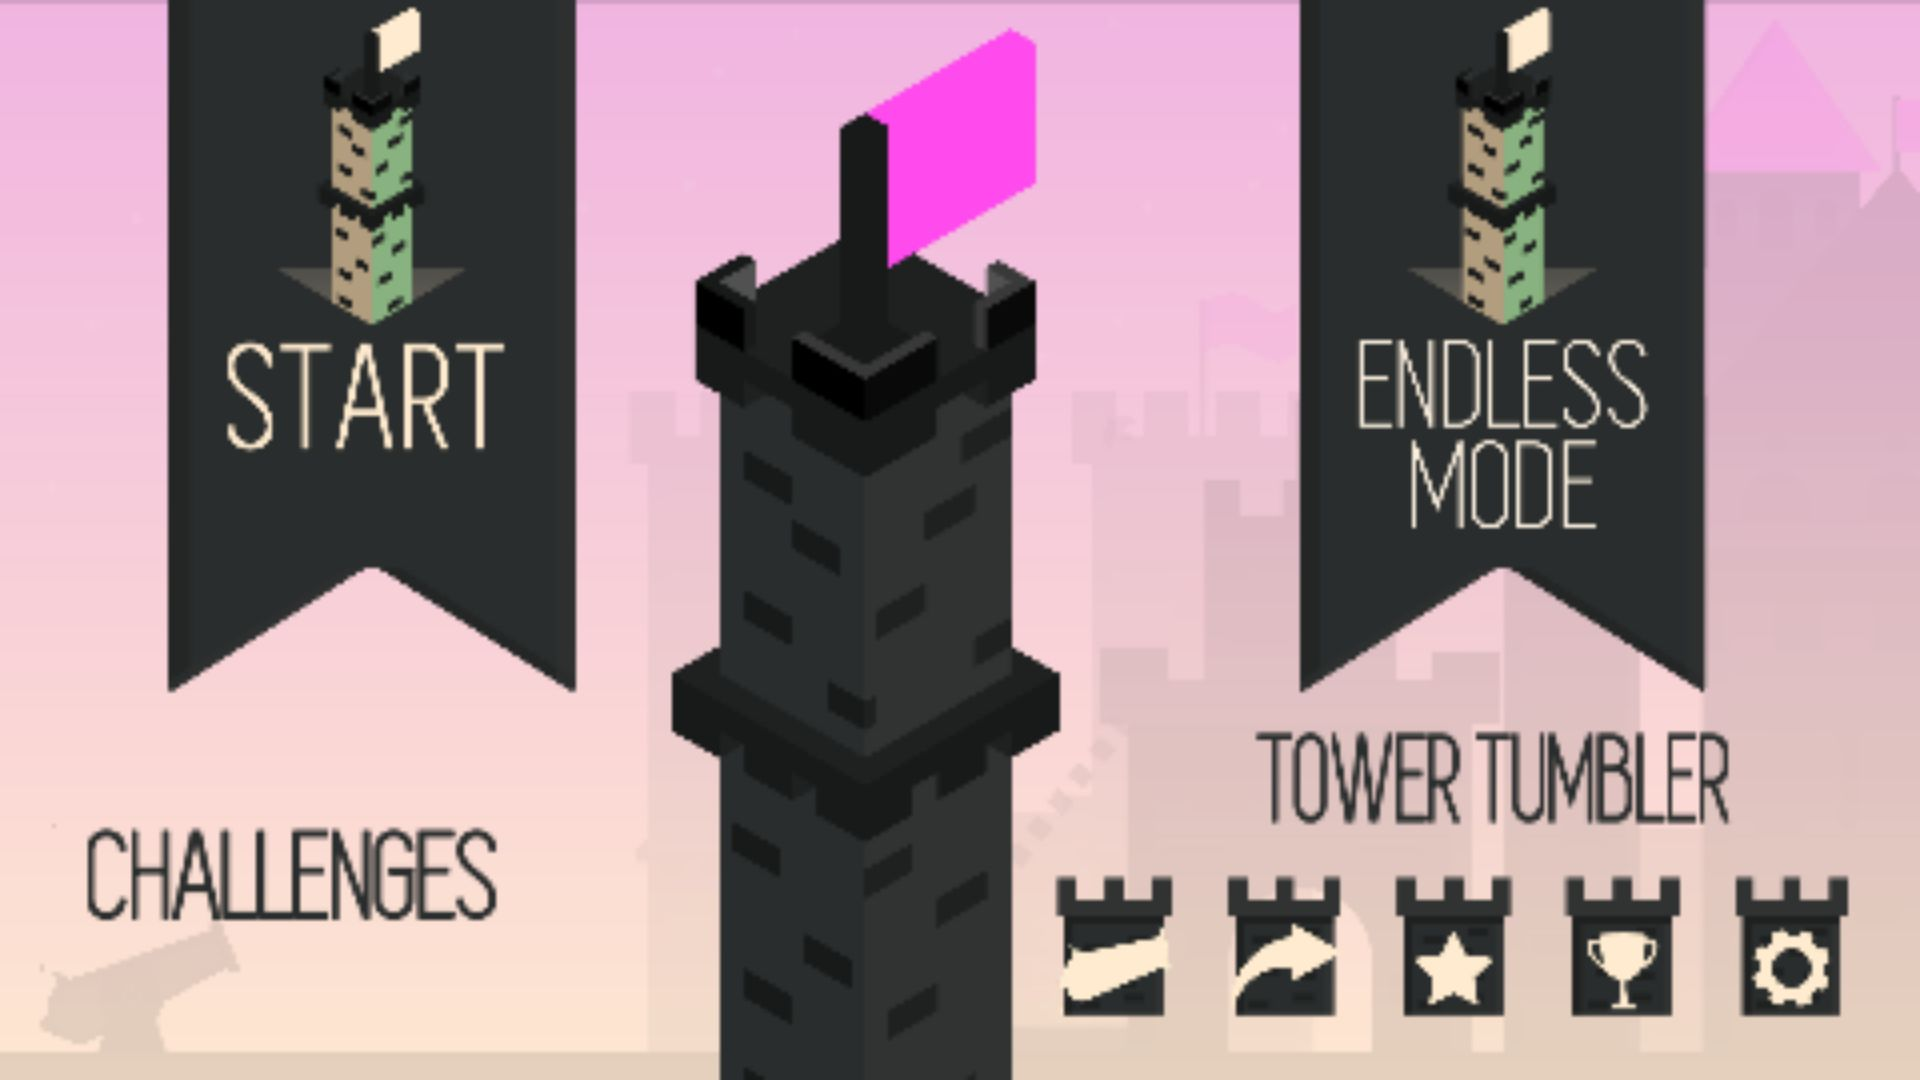 Tower Tumbler Buildbox Template Screenshot 3